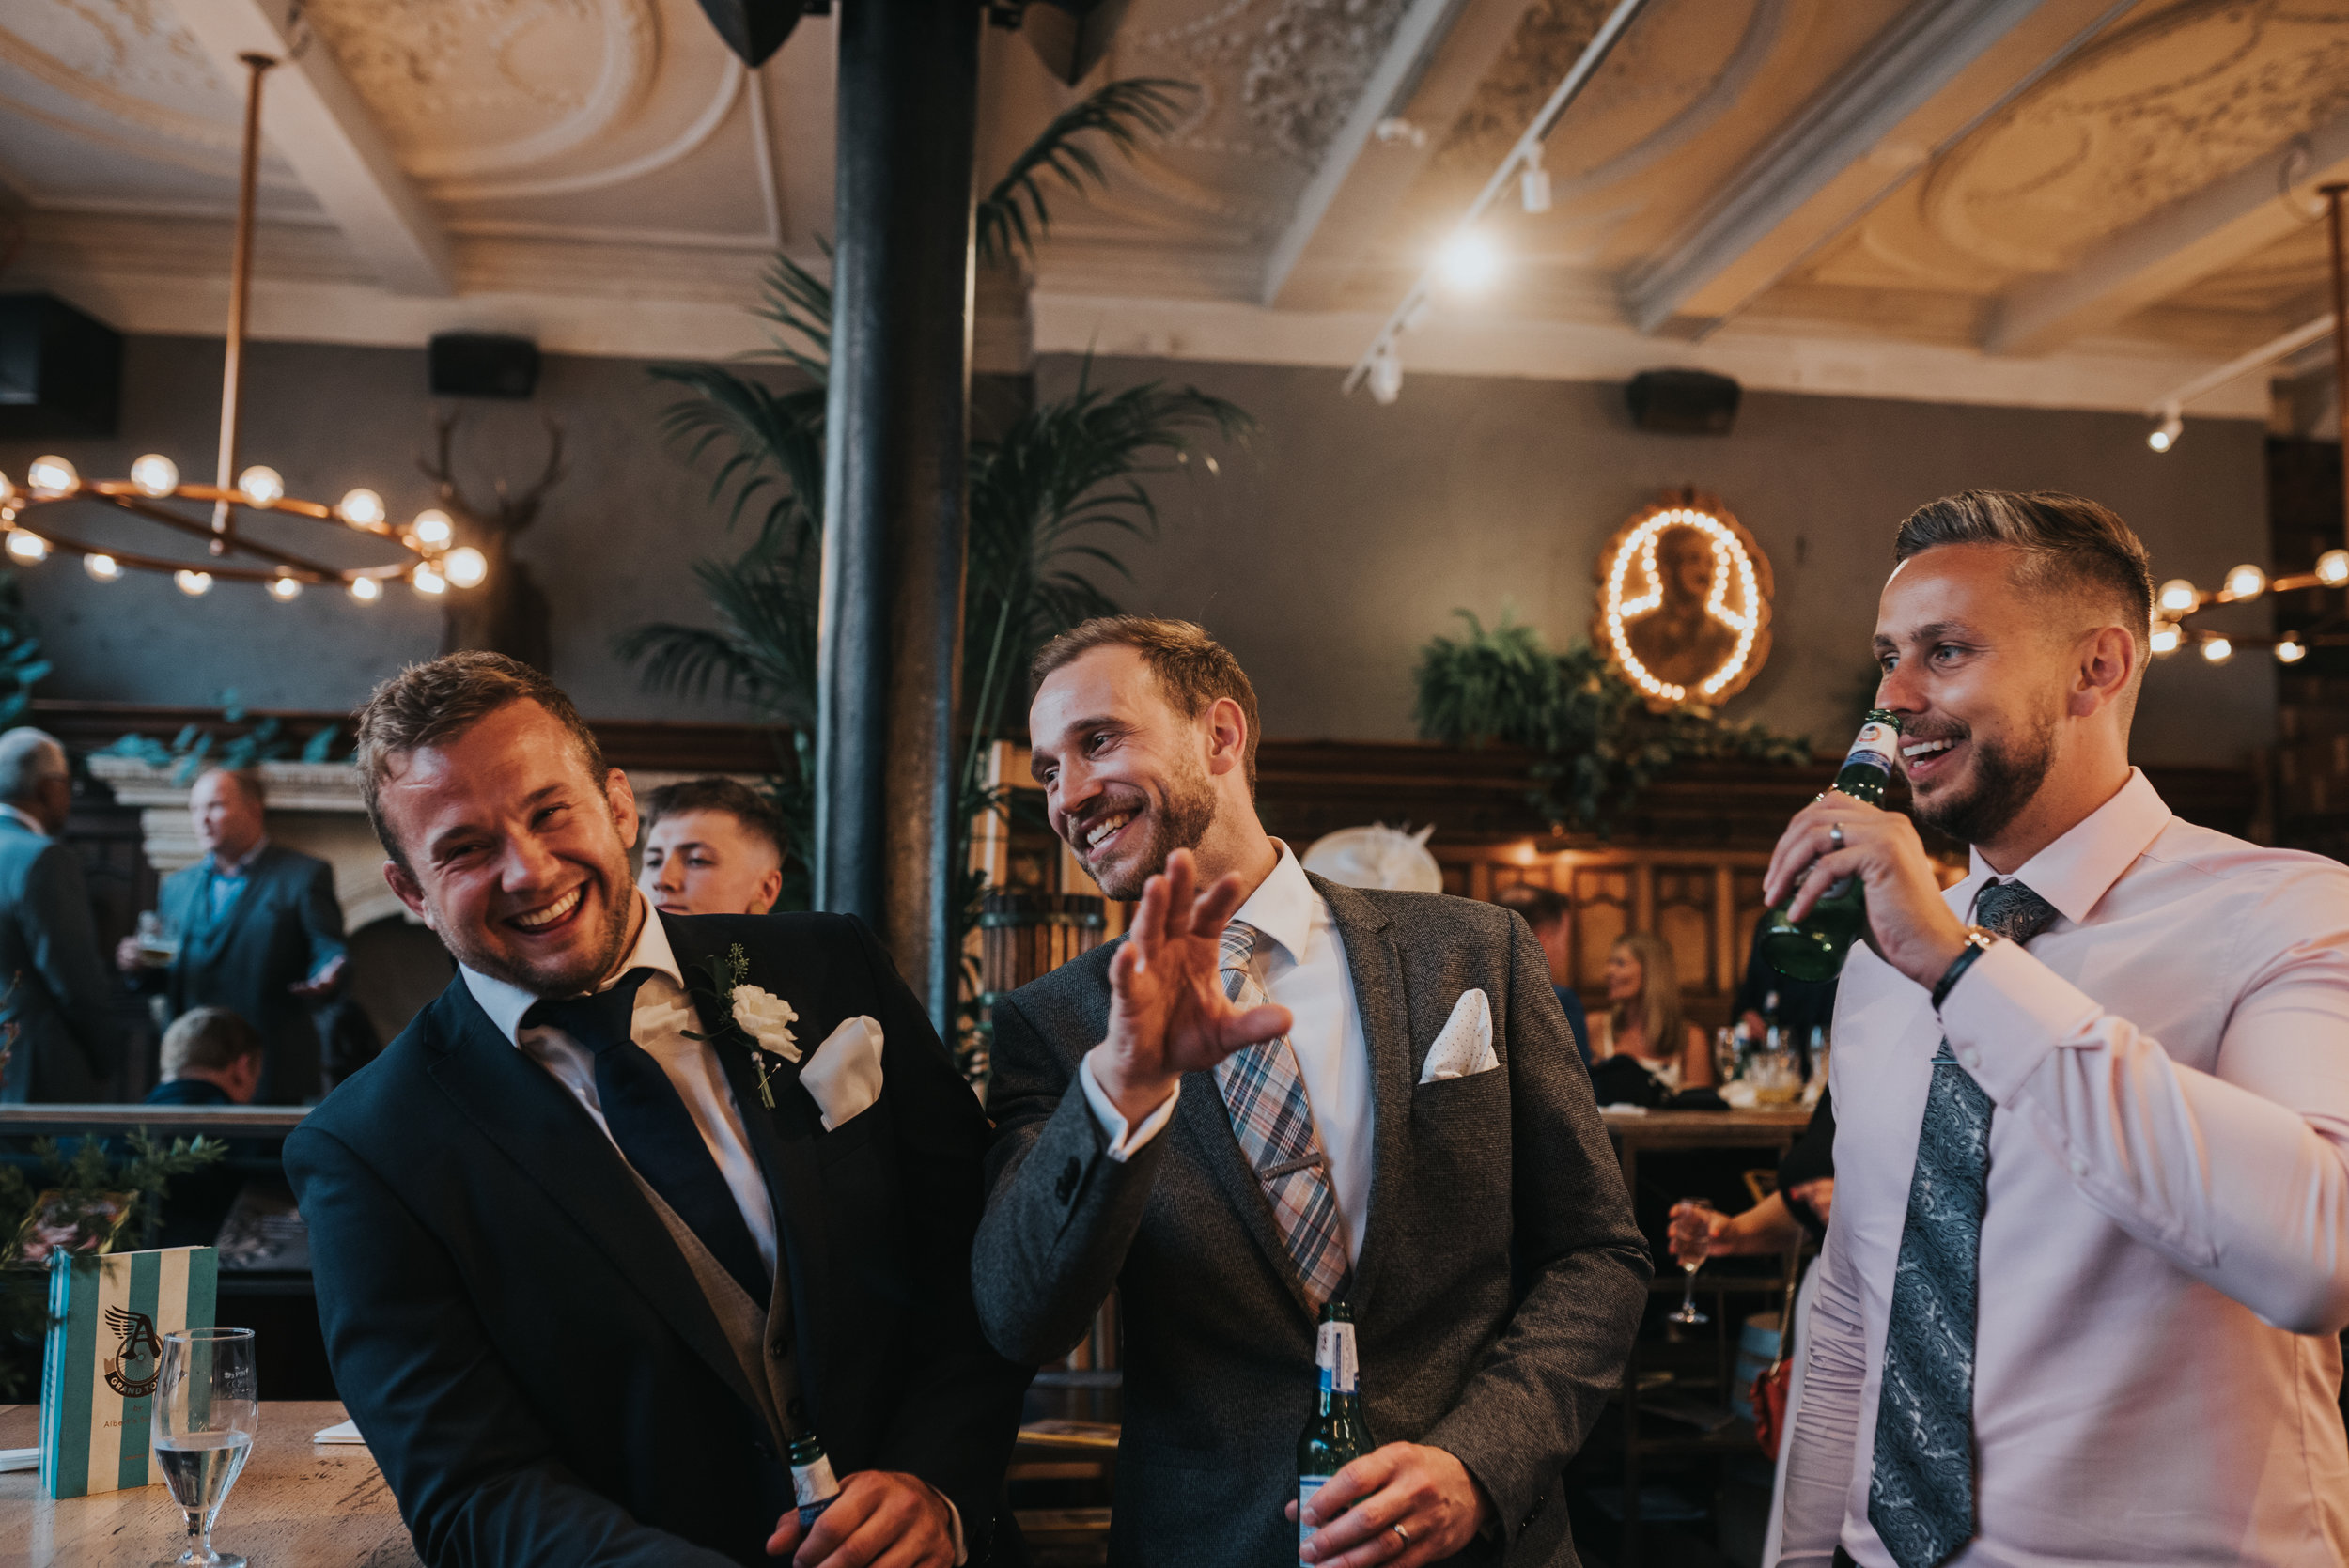 Three male wedding guests laugh together.